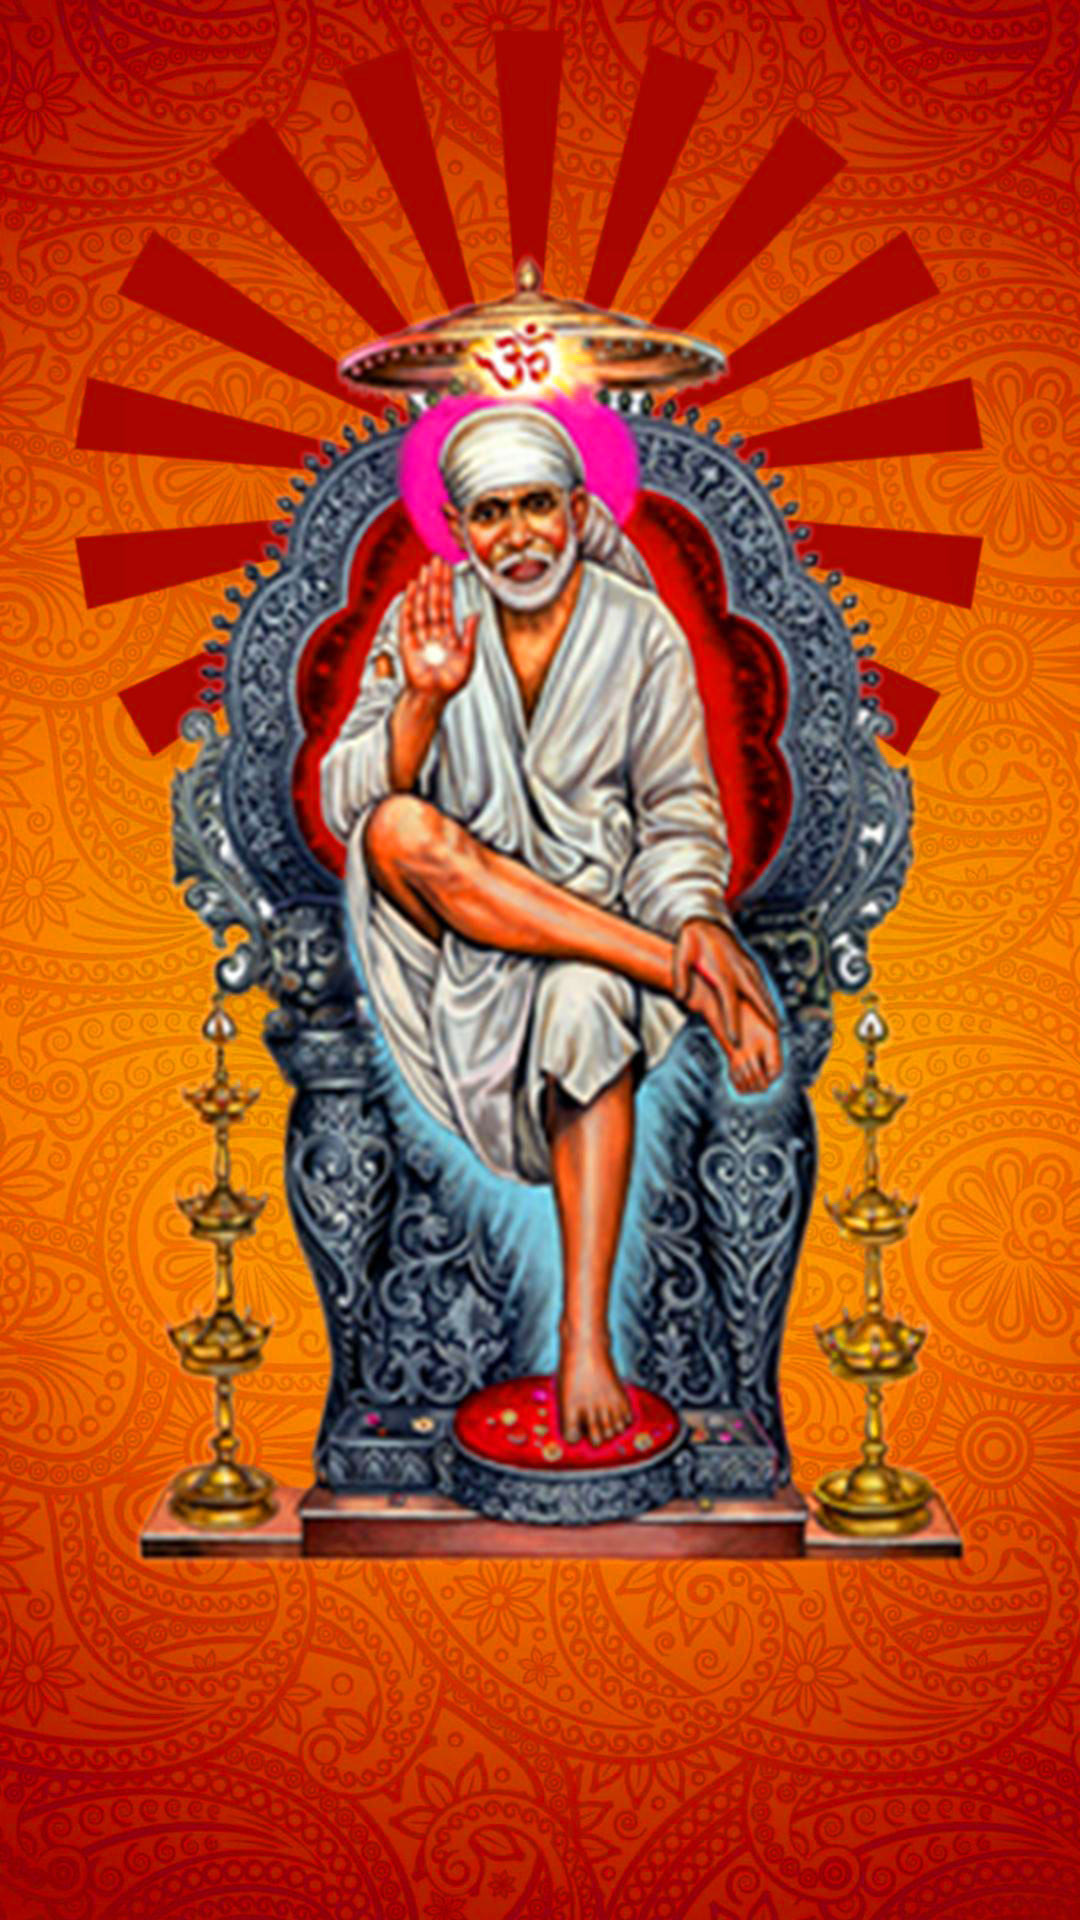 Beautiful Sai Baba Blessing Images wallpaper pictures hd download